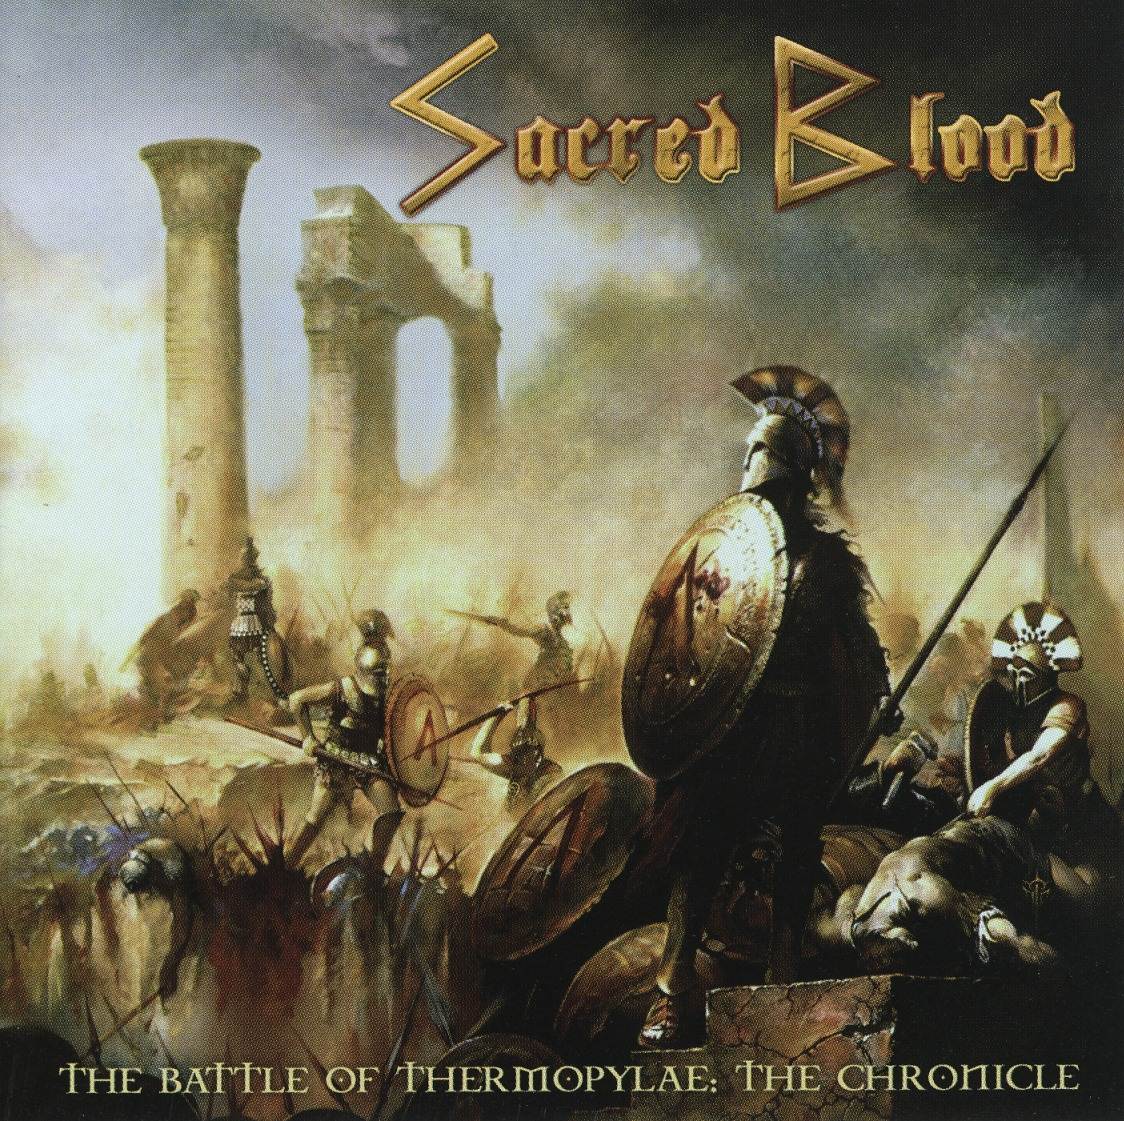 SACRED BLOOD (Greece) / The Battle Of Thermopylae: The Chronicle